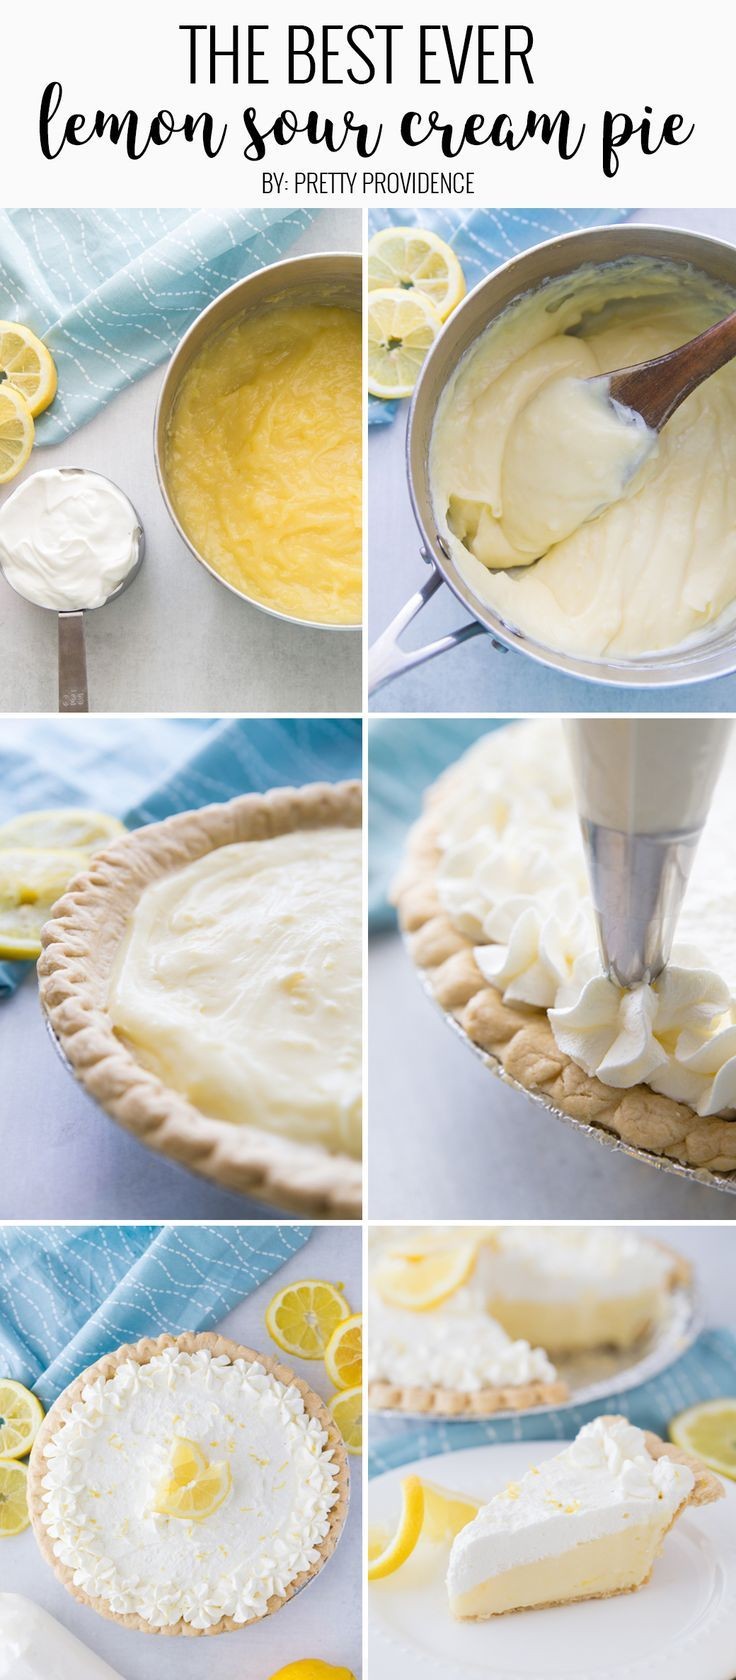 Lemon Sour Cream Pie Recipe Lemon Sour Cream Pie Cream Pie Sour Cream